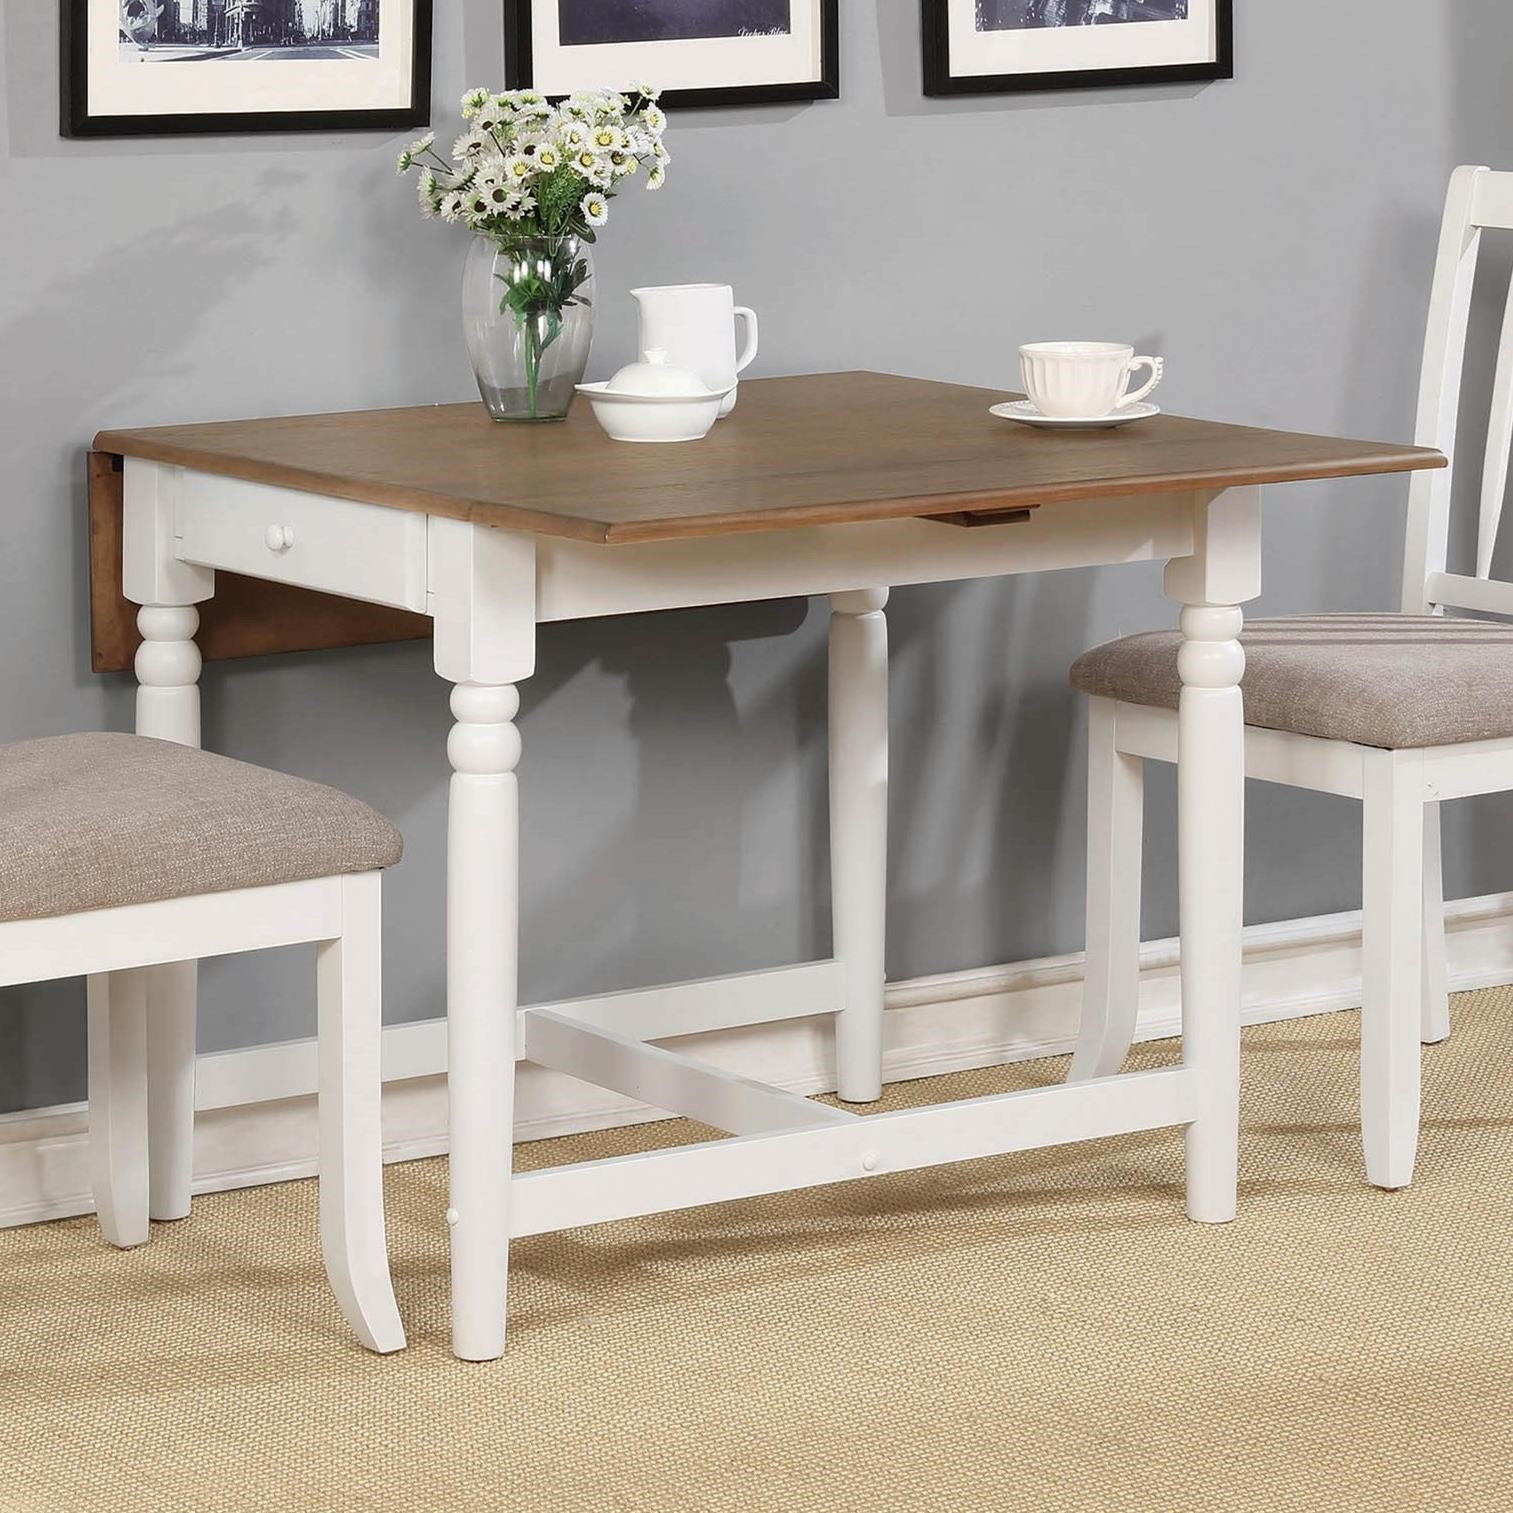 Hesperia Dining Table by Coaster at Value City Furniture